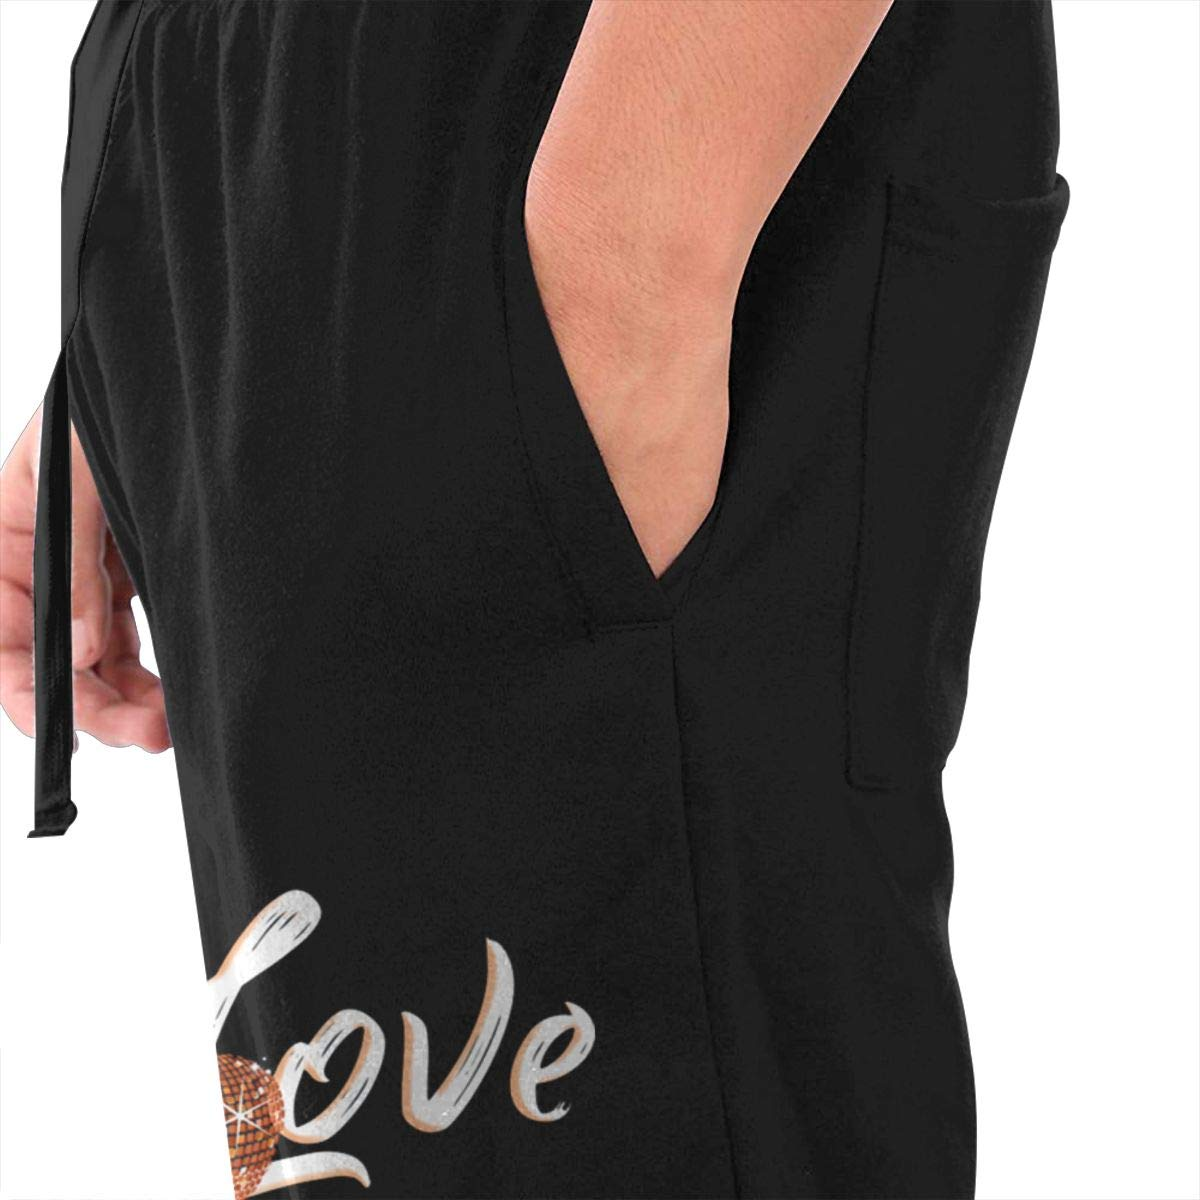 Live Love Dance Drawstring Waist,100/% Cotton,Elastic Waist Cuffed,Jogger Sweatpants Black